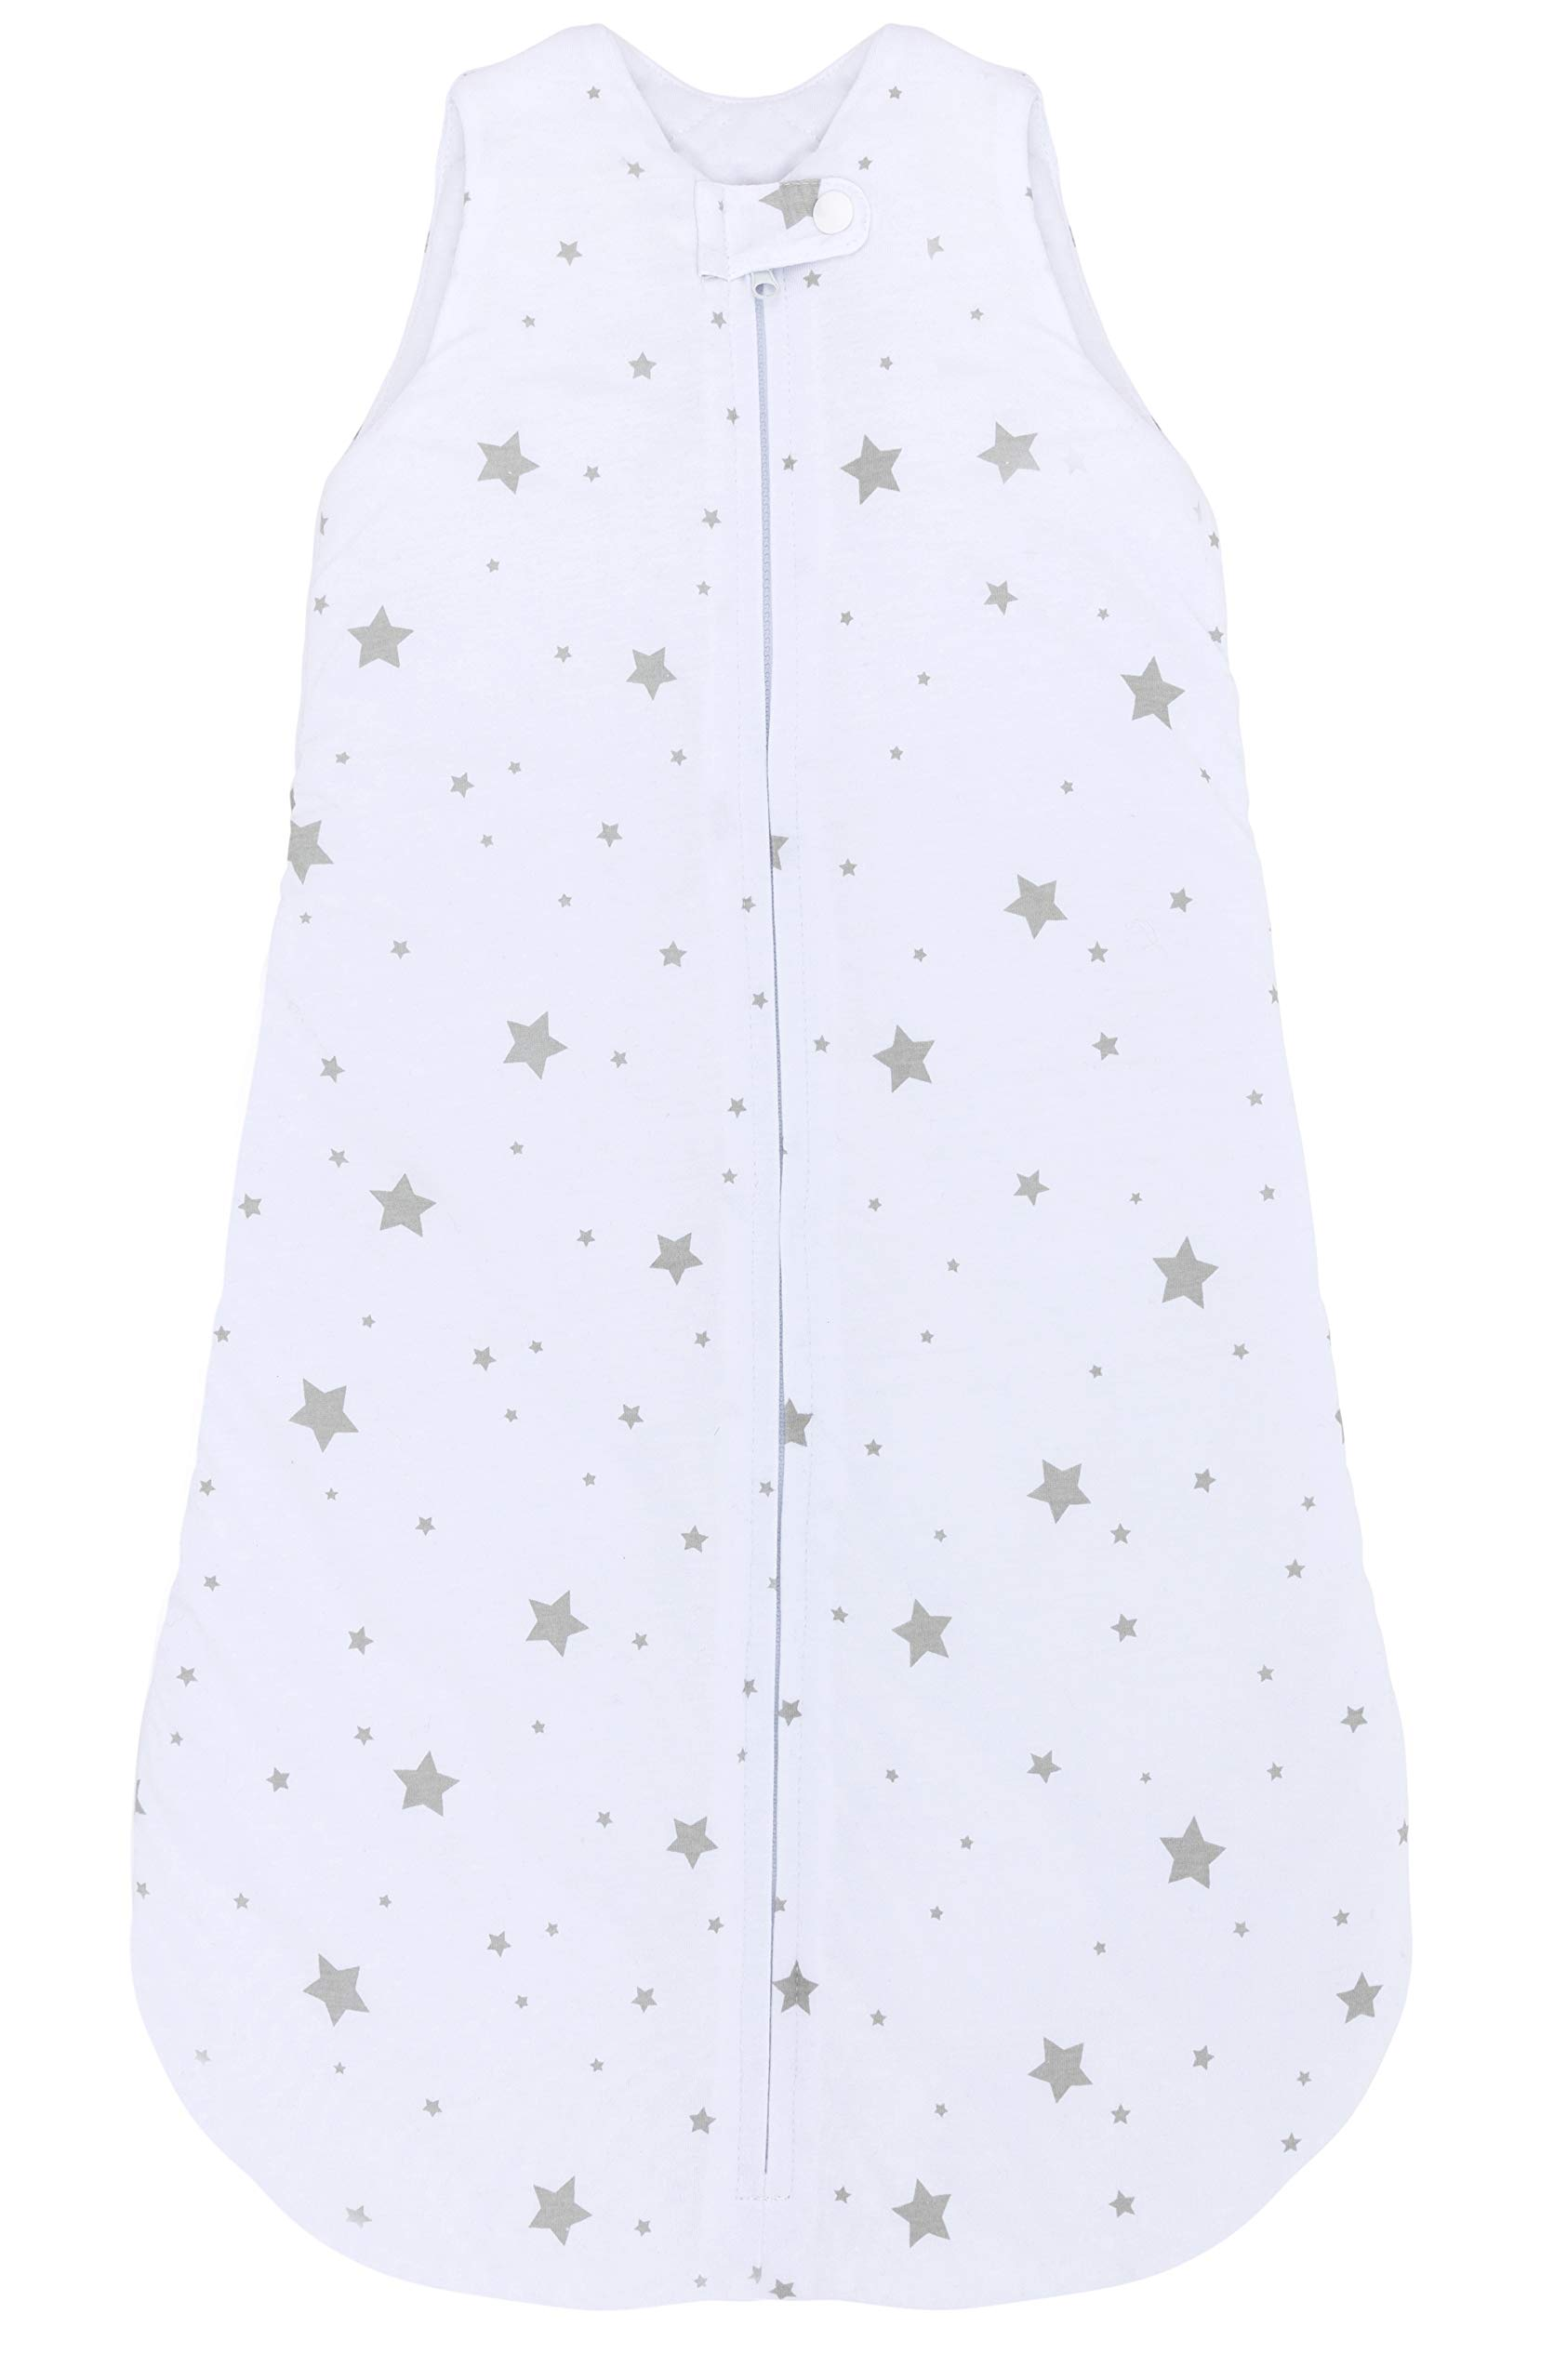 Ely's & Co 100% Cotton Wearable Blanket Baby Sleep Bag Grey Stars 2 Pack (Grey Stars, 3-6 Months)